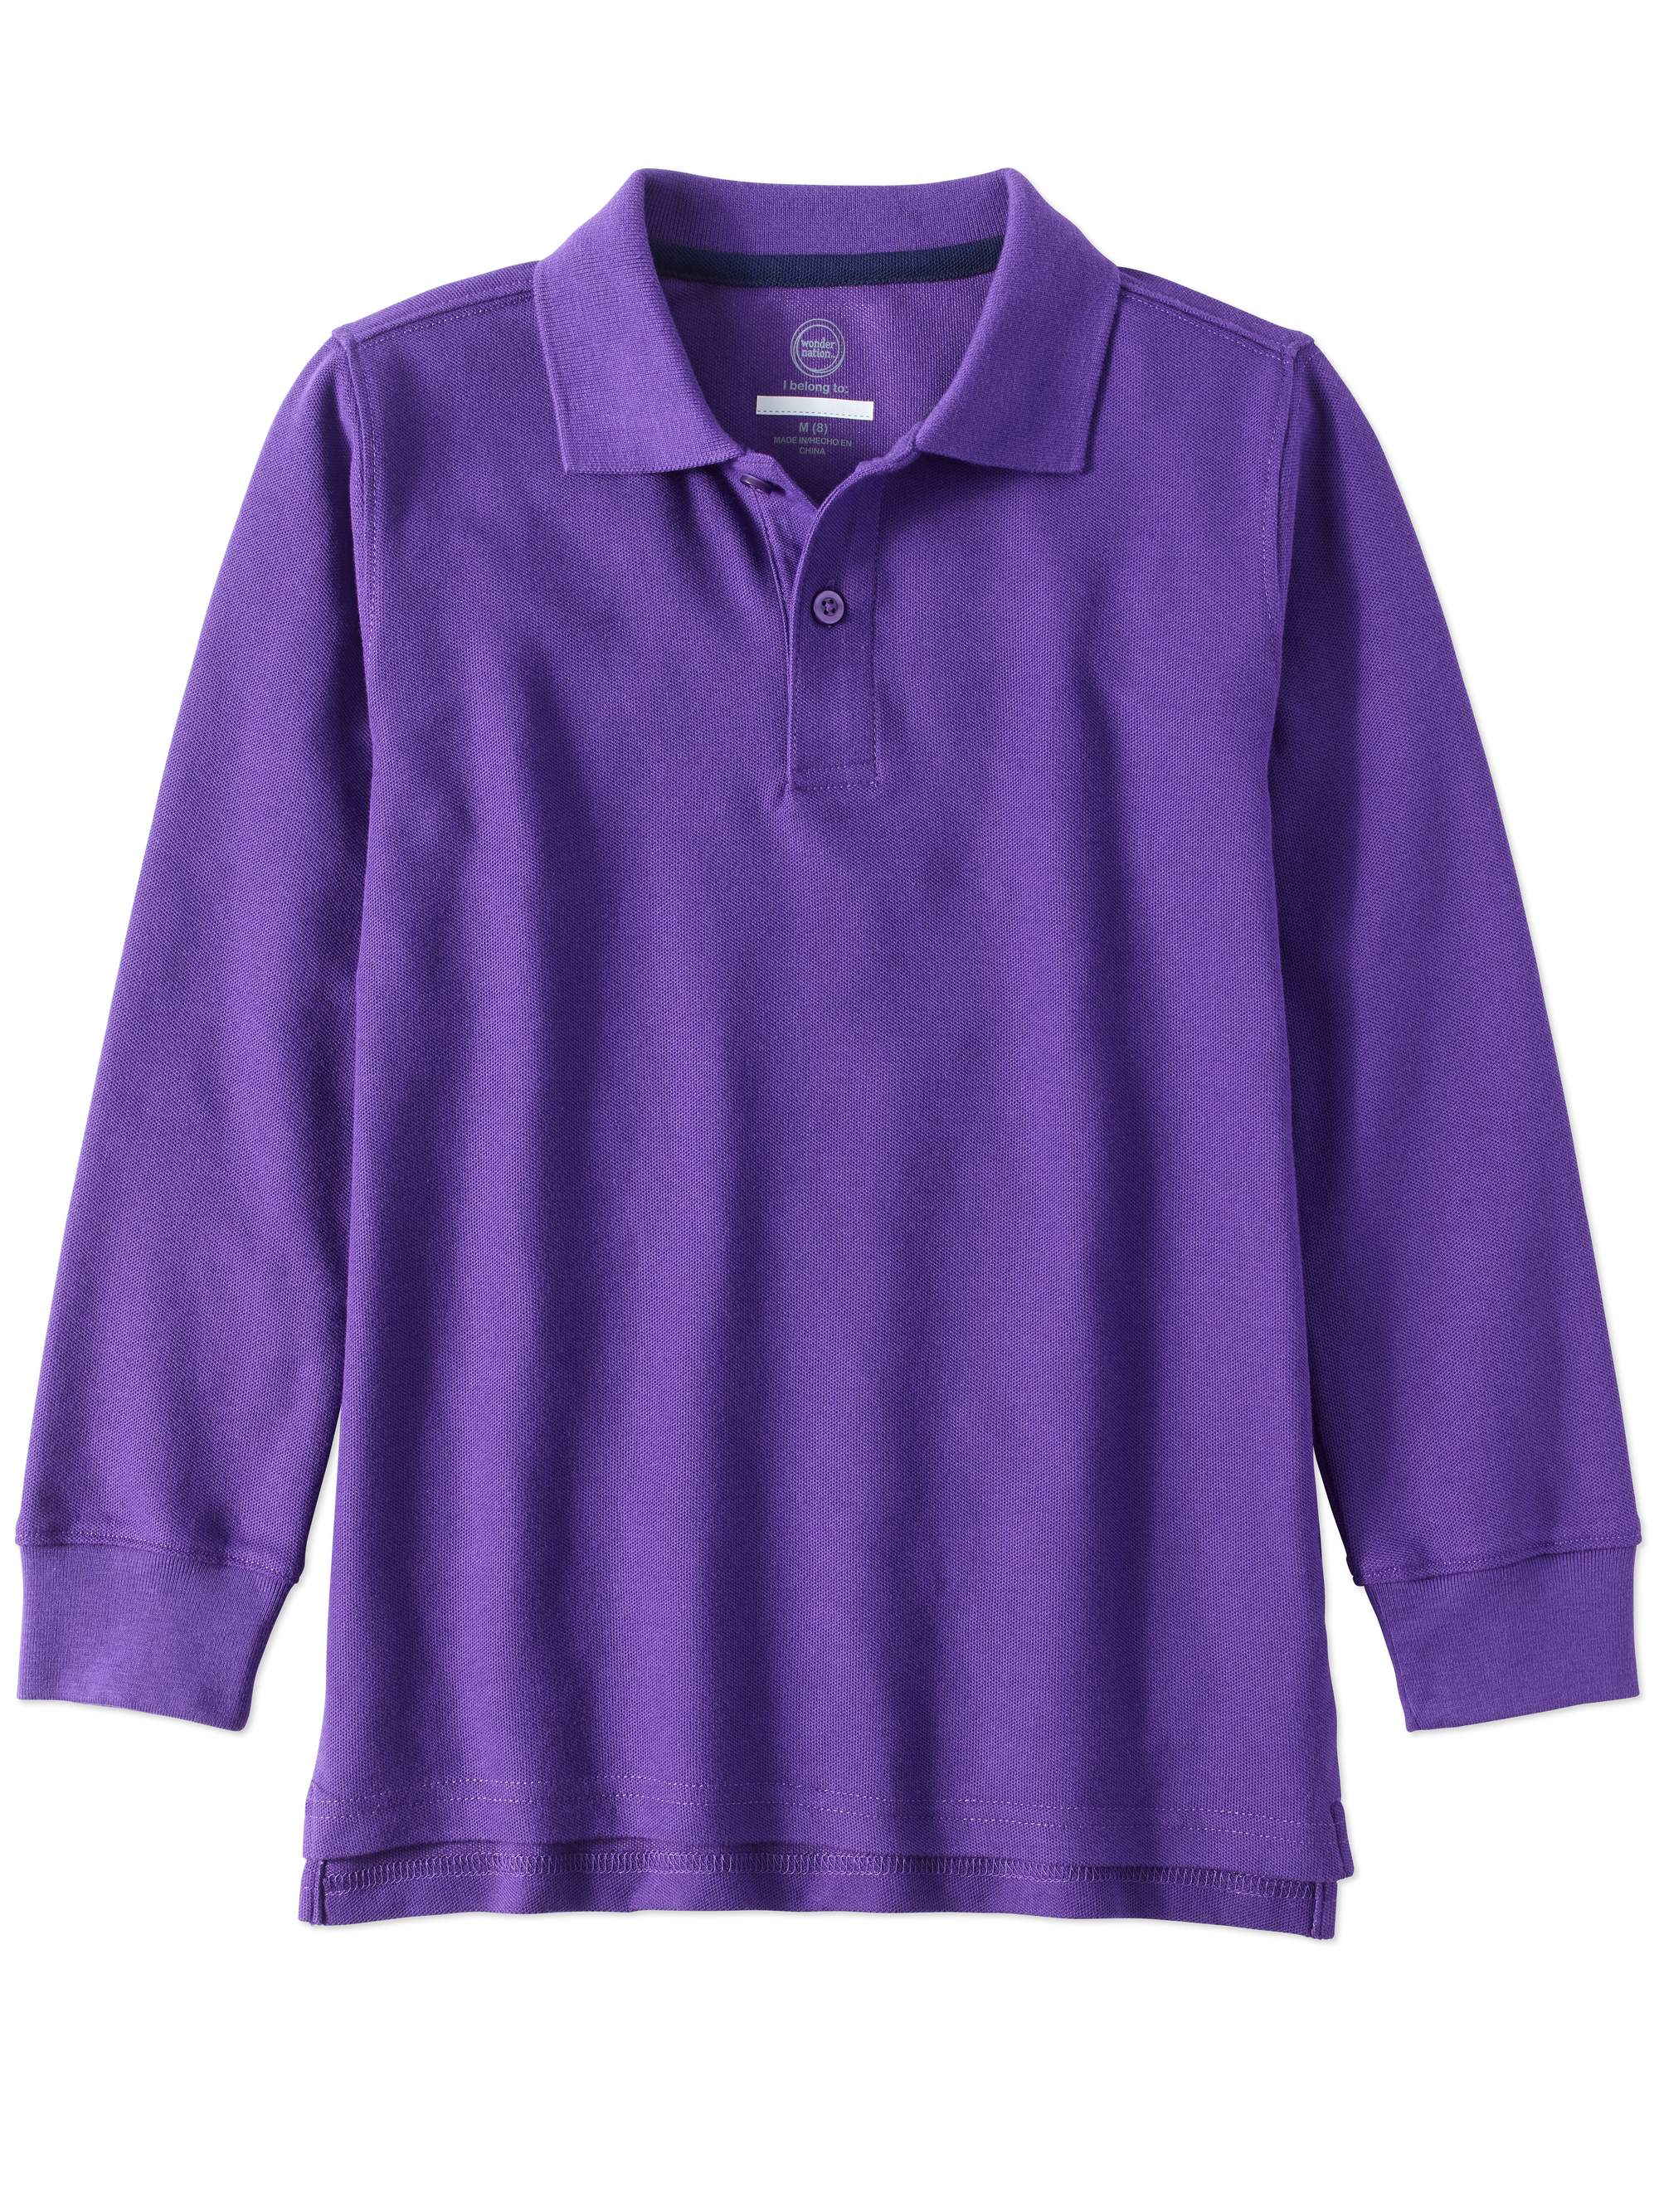 Boys School Uniform Long Sleeve Double Pique Polo